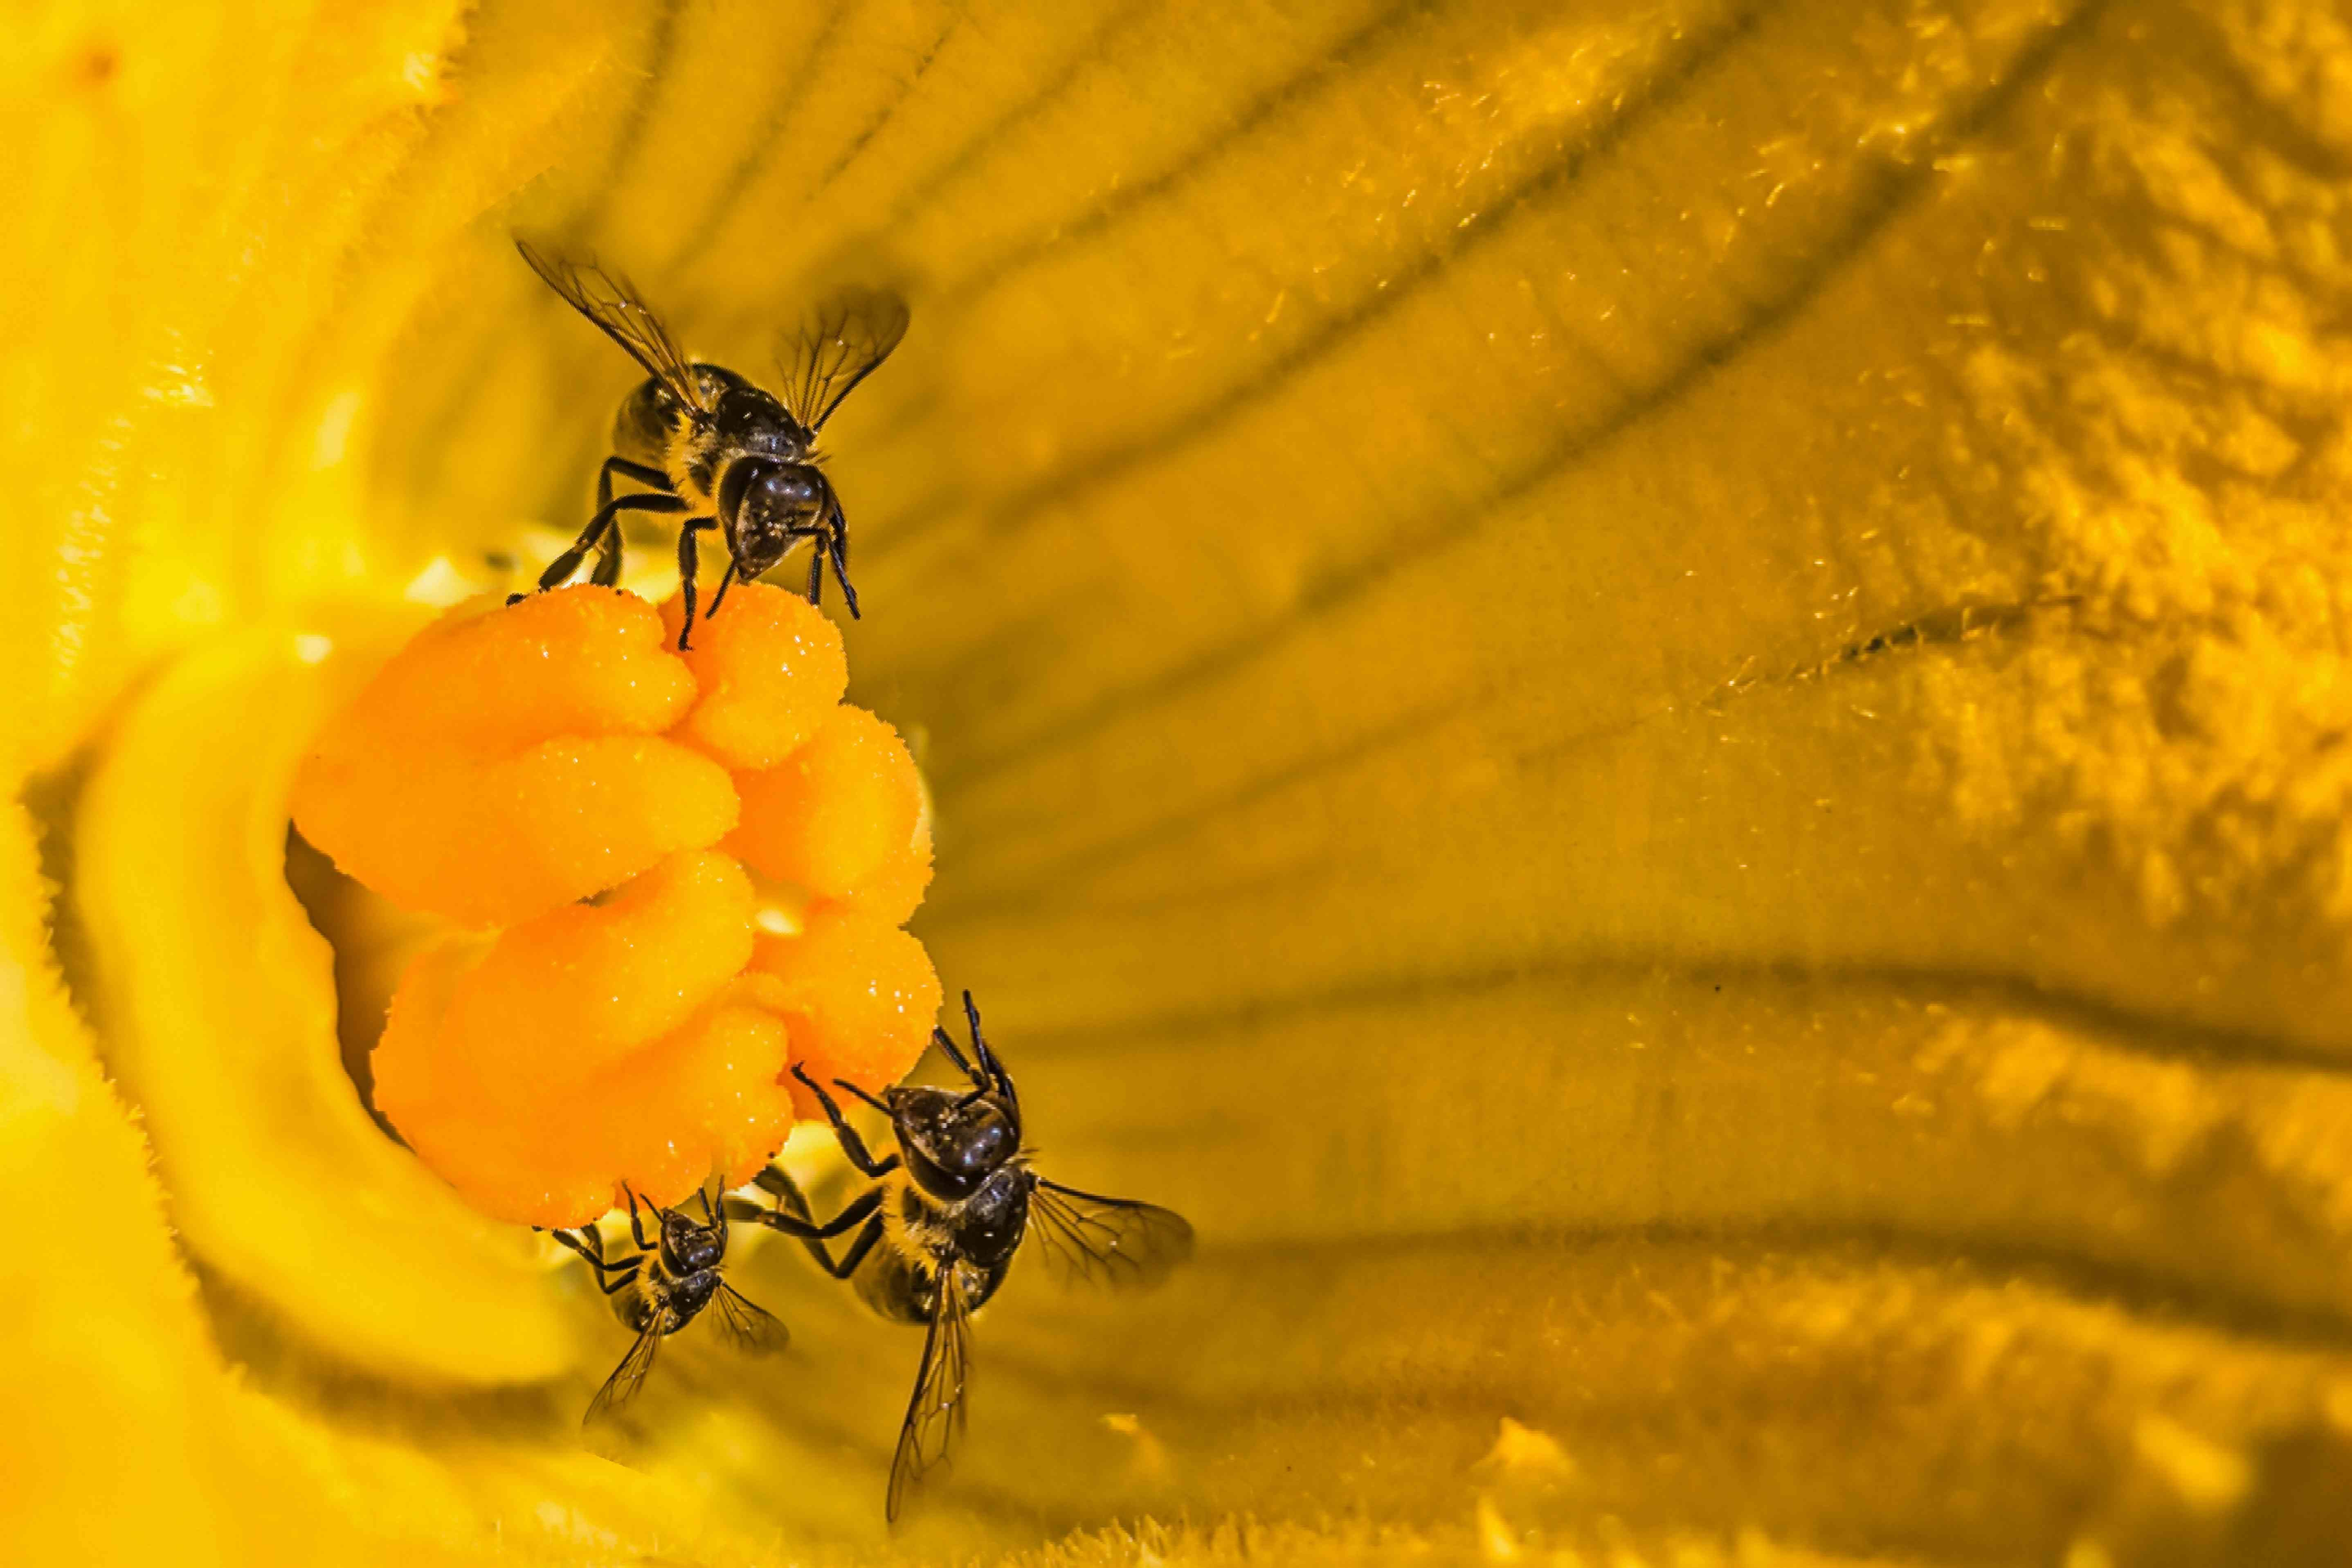 bees pollinating zucchini